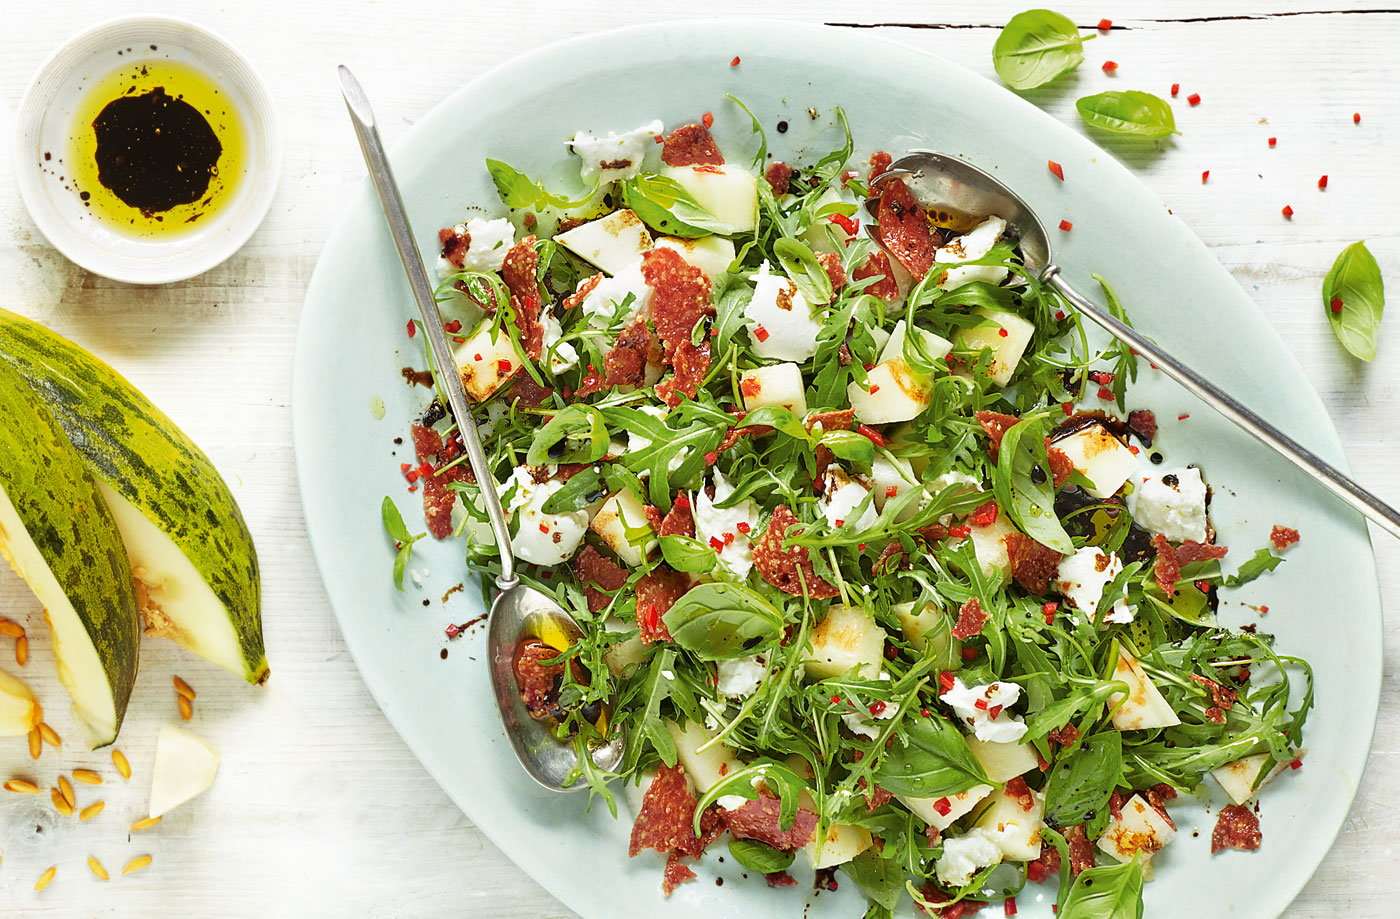 Melon, mozzarella and salami salad recipe